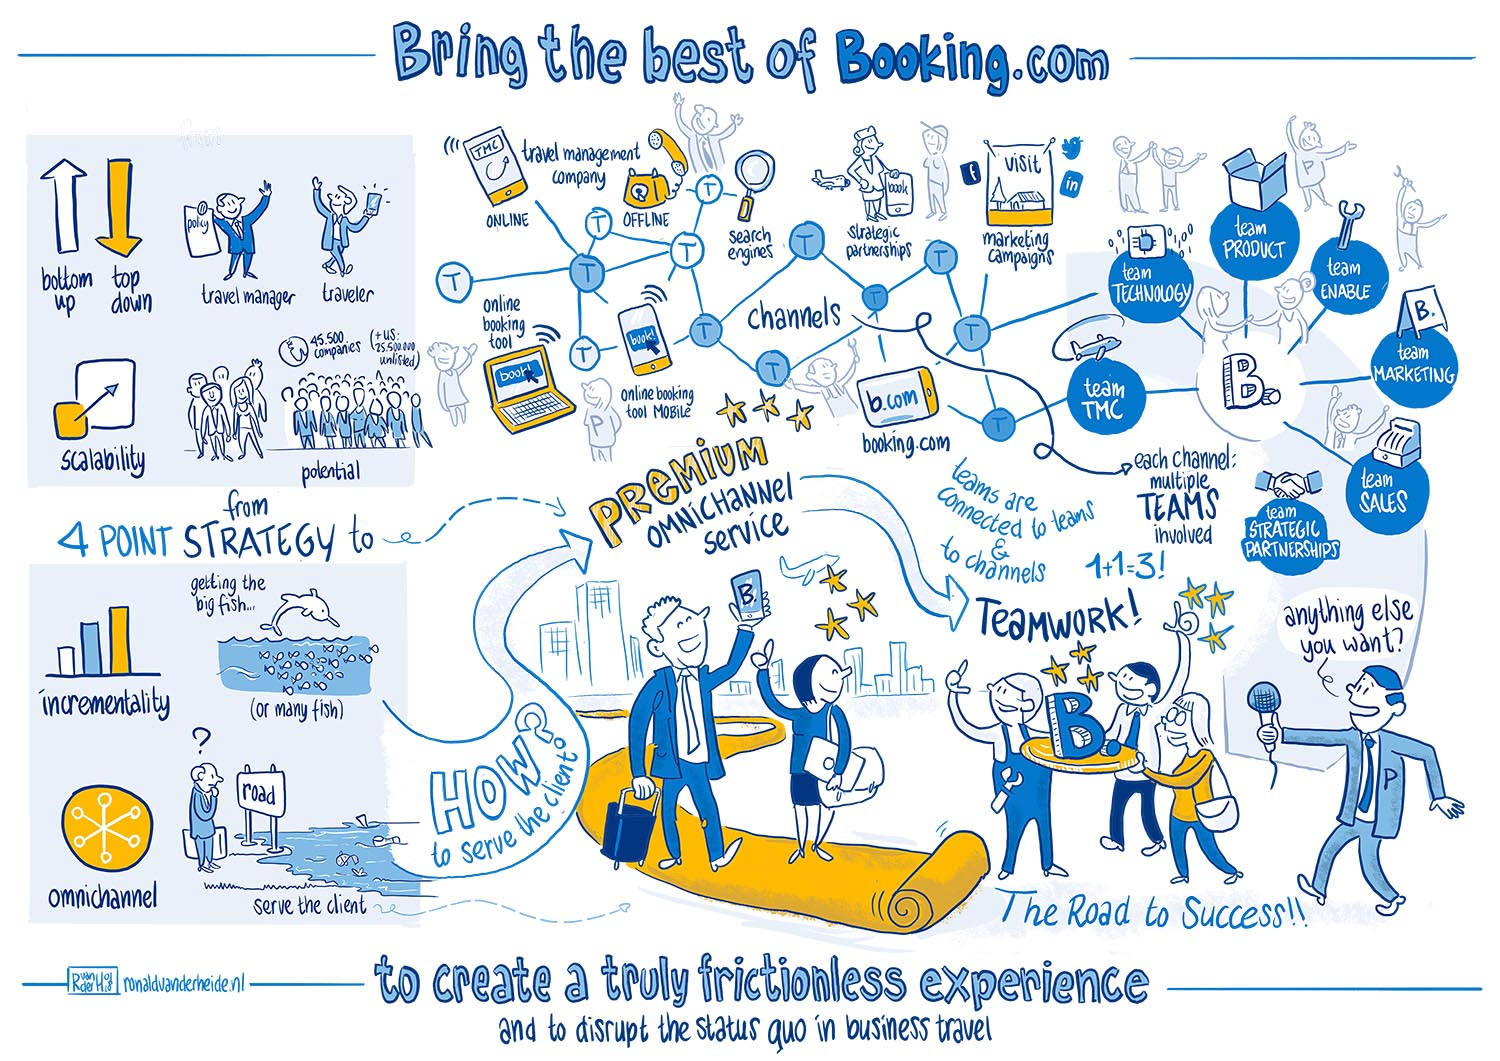 strategy booking.com business online cartooning live tekenen brainstorm sketch notes